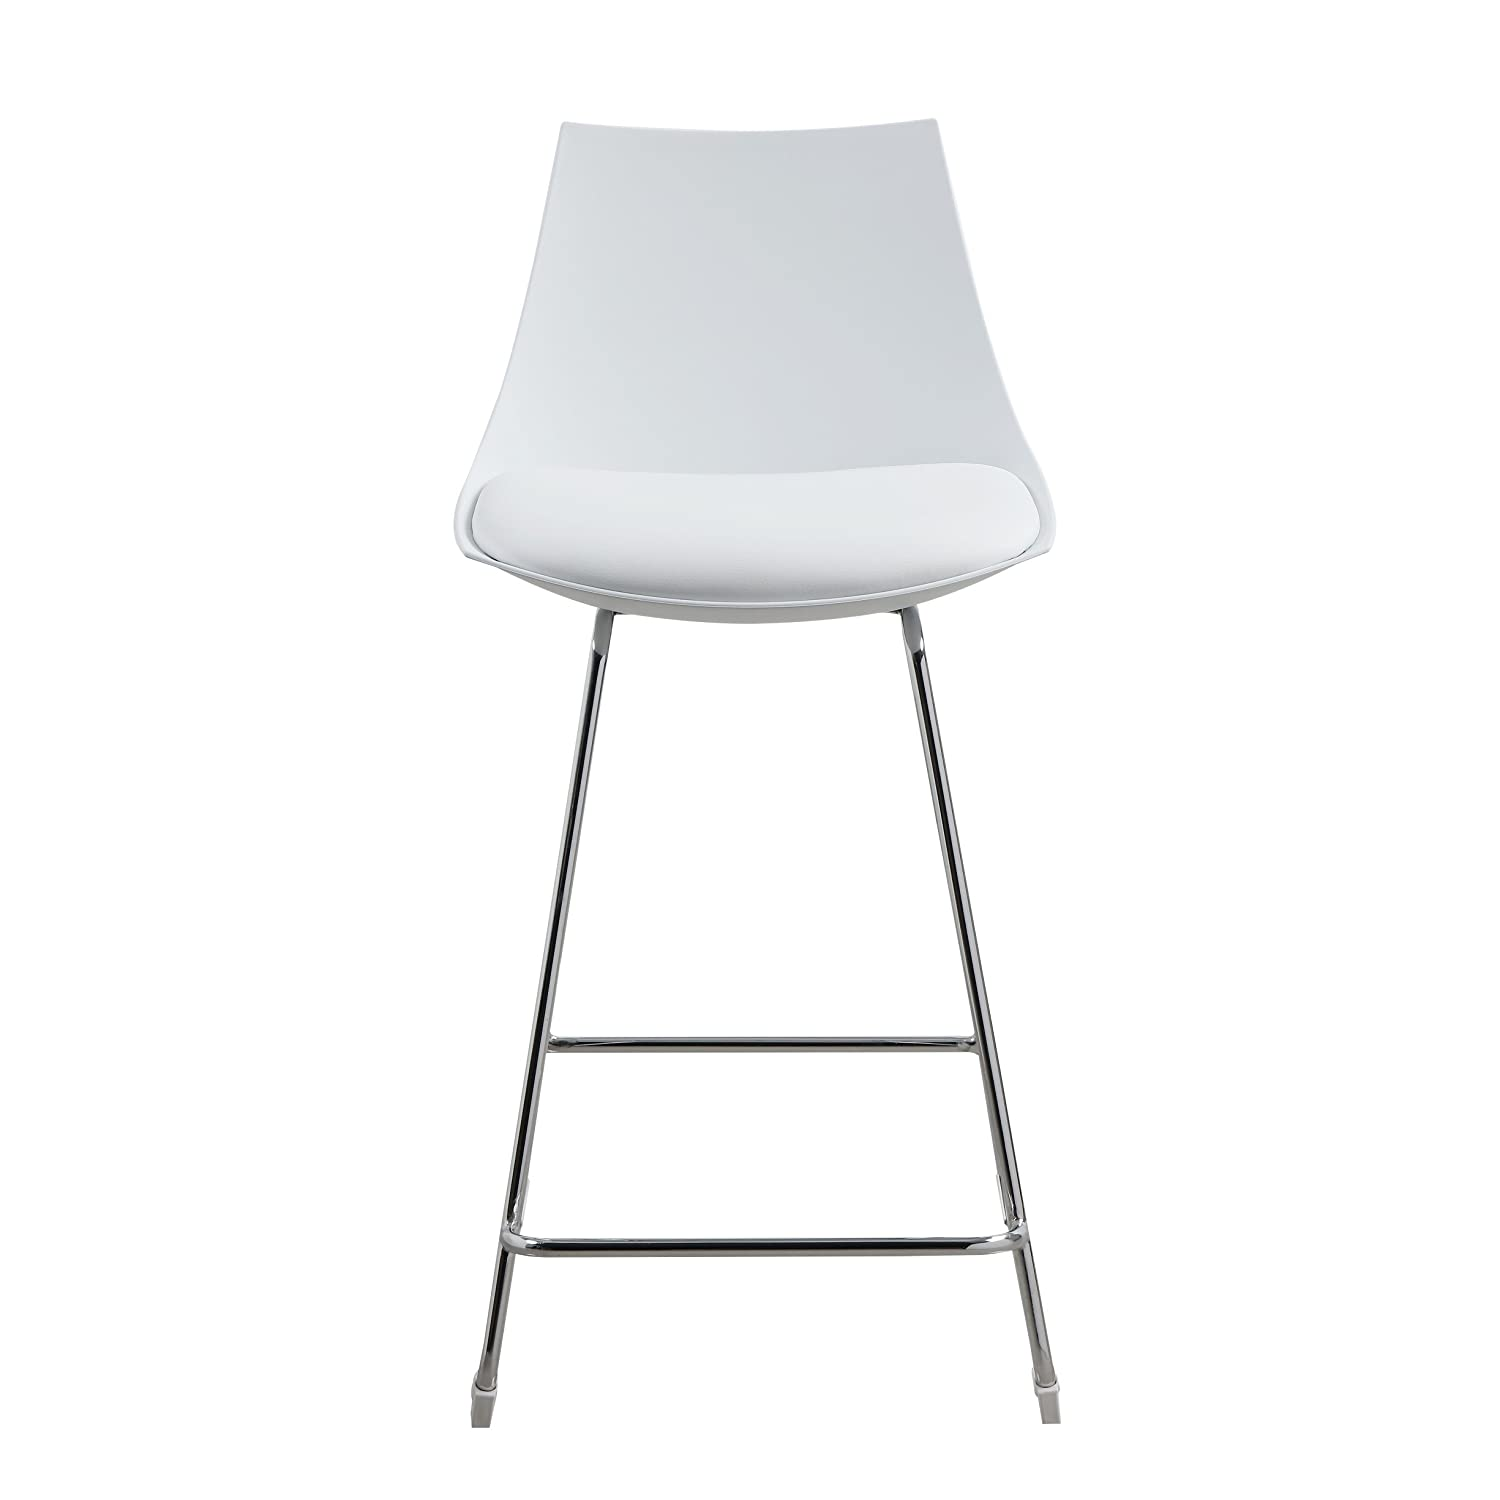 Emerald Home Neo White 24 Bar Stool with Molded Plastic Shell, Cushioned Seat, And Metal Bracing, Set of Two